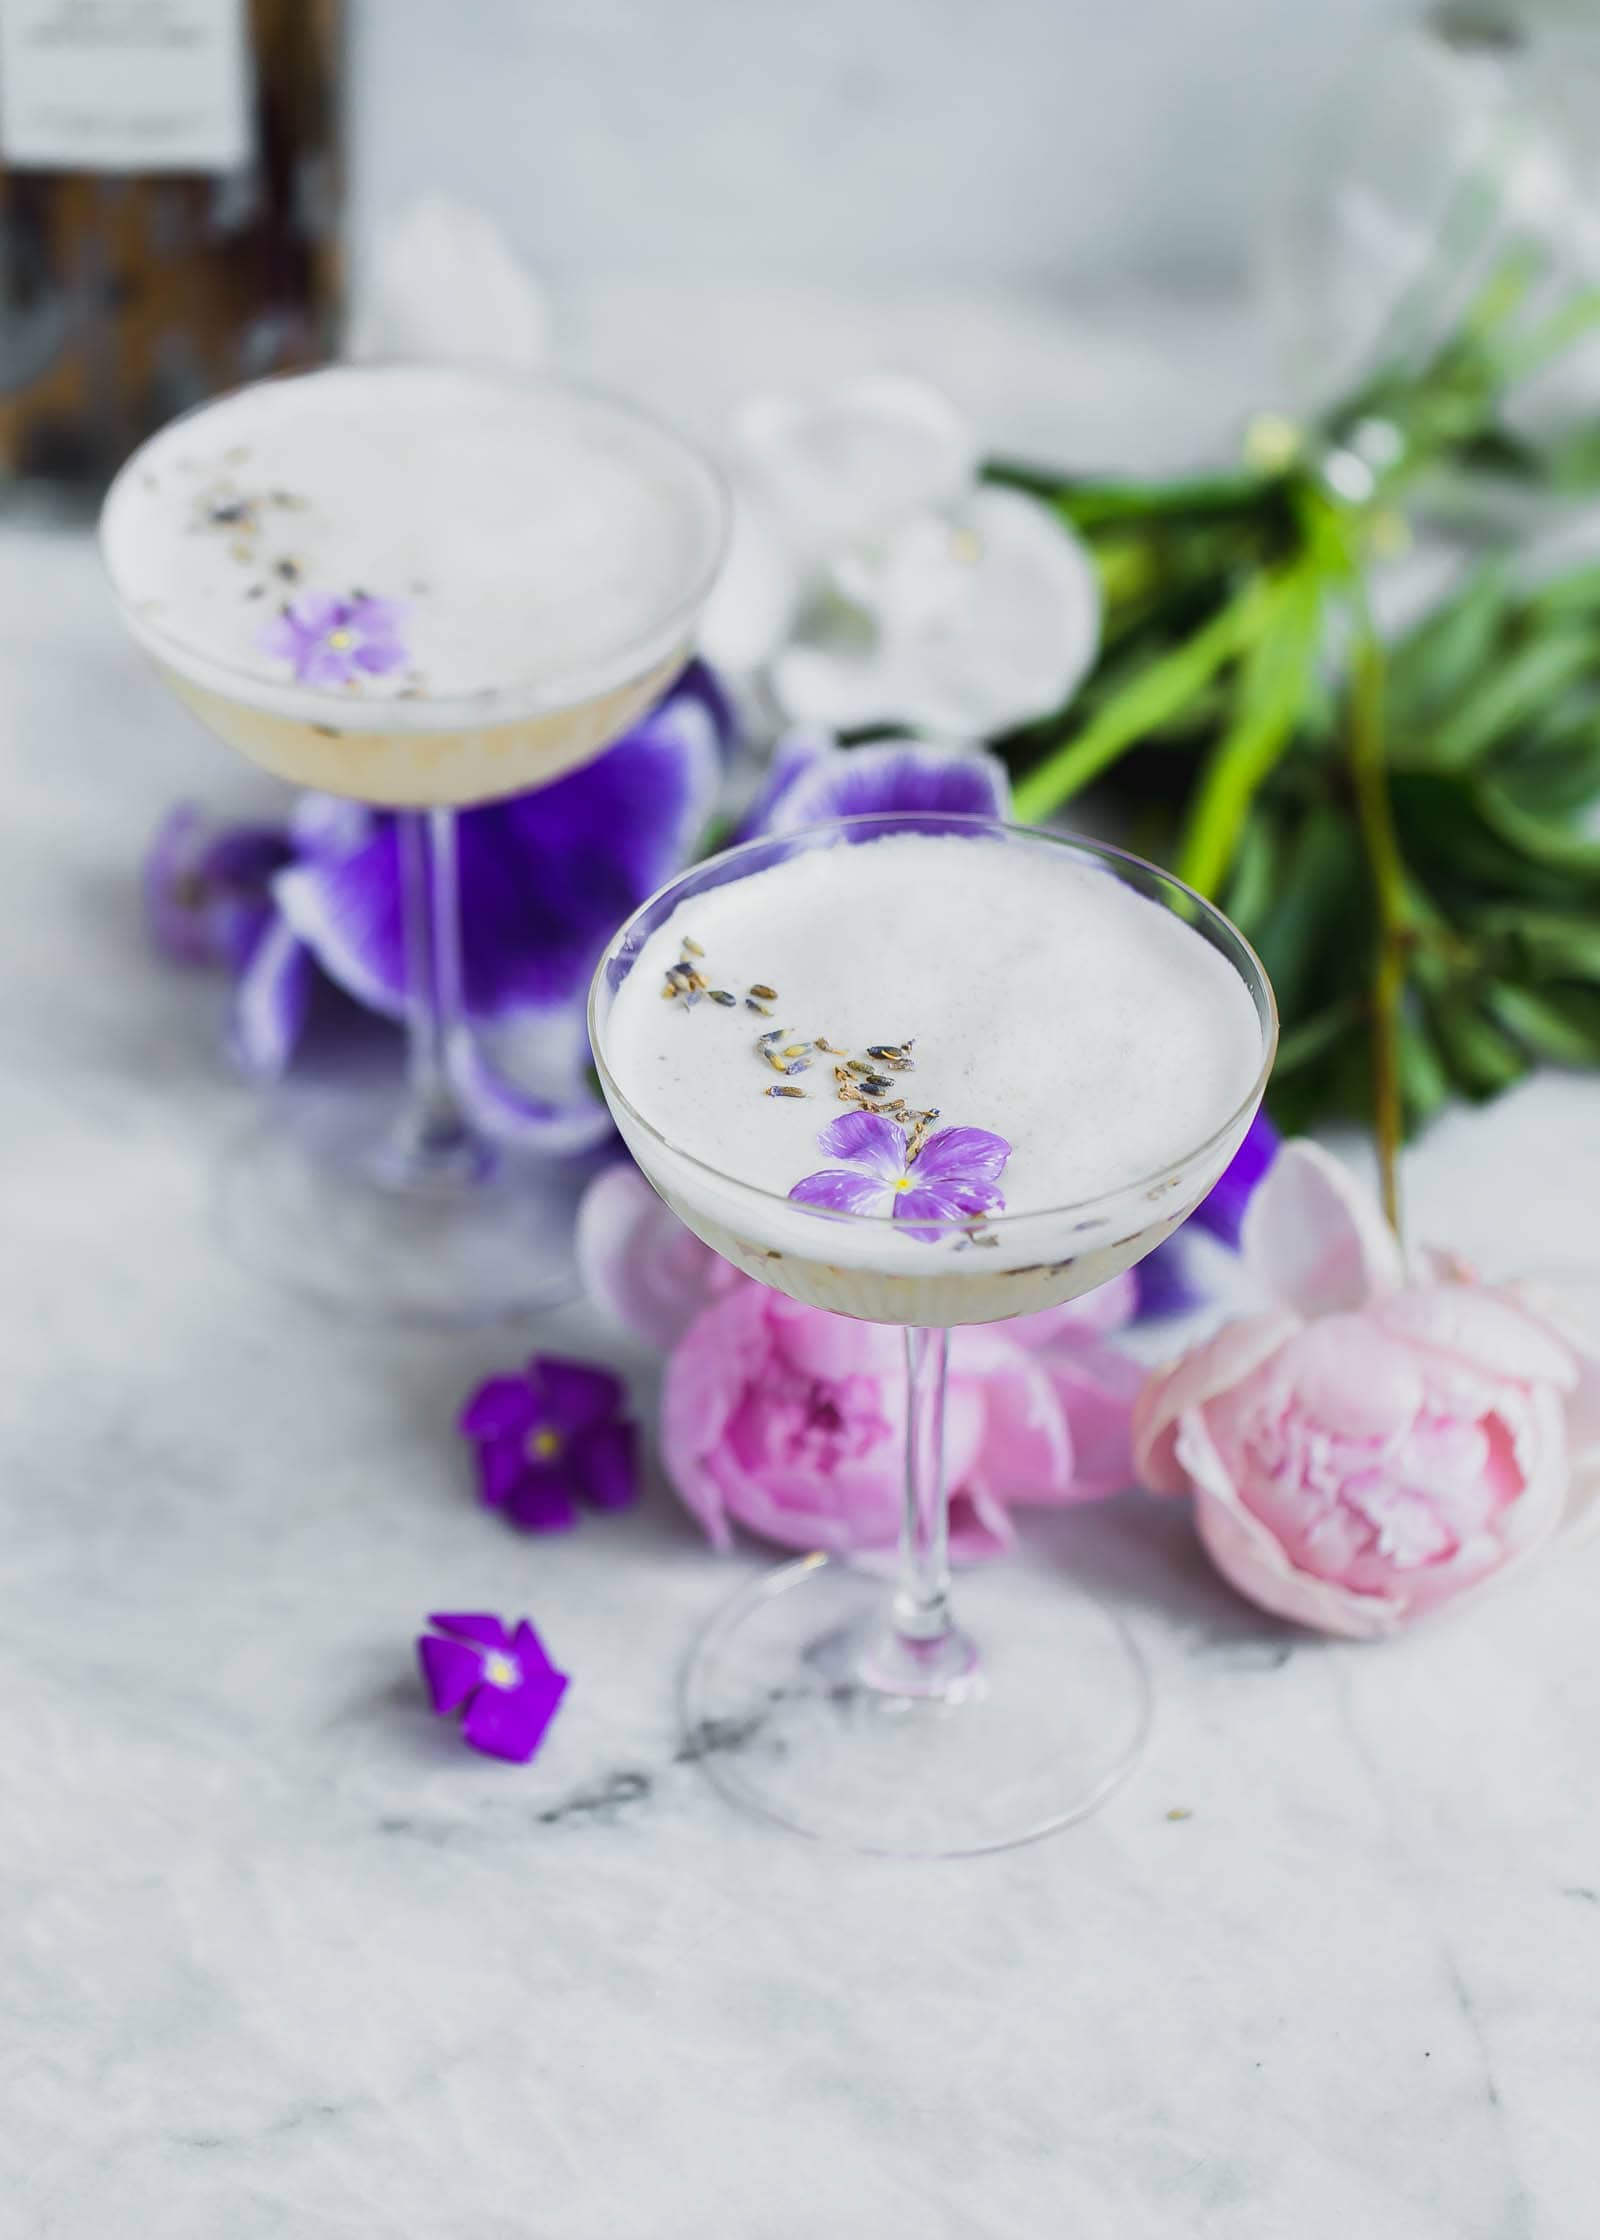 Lavender Coconut Vodka Sours topped with violets